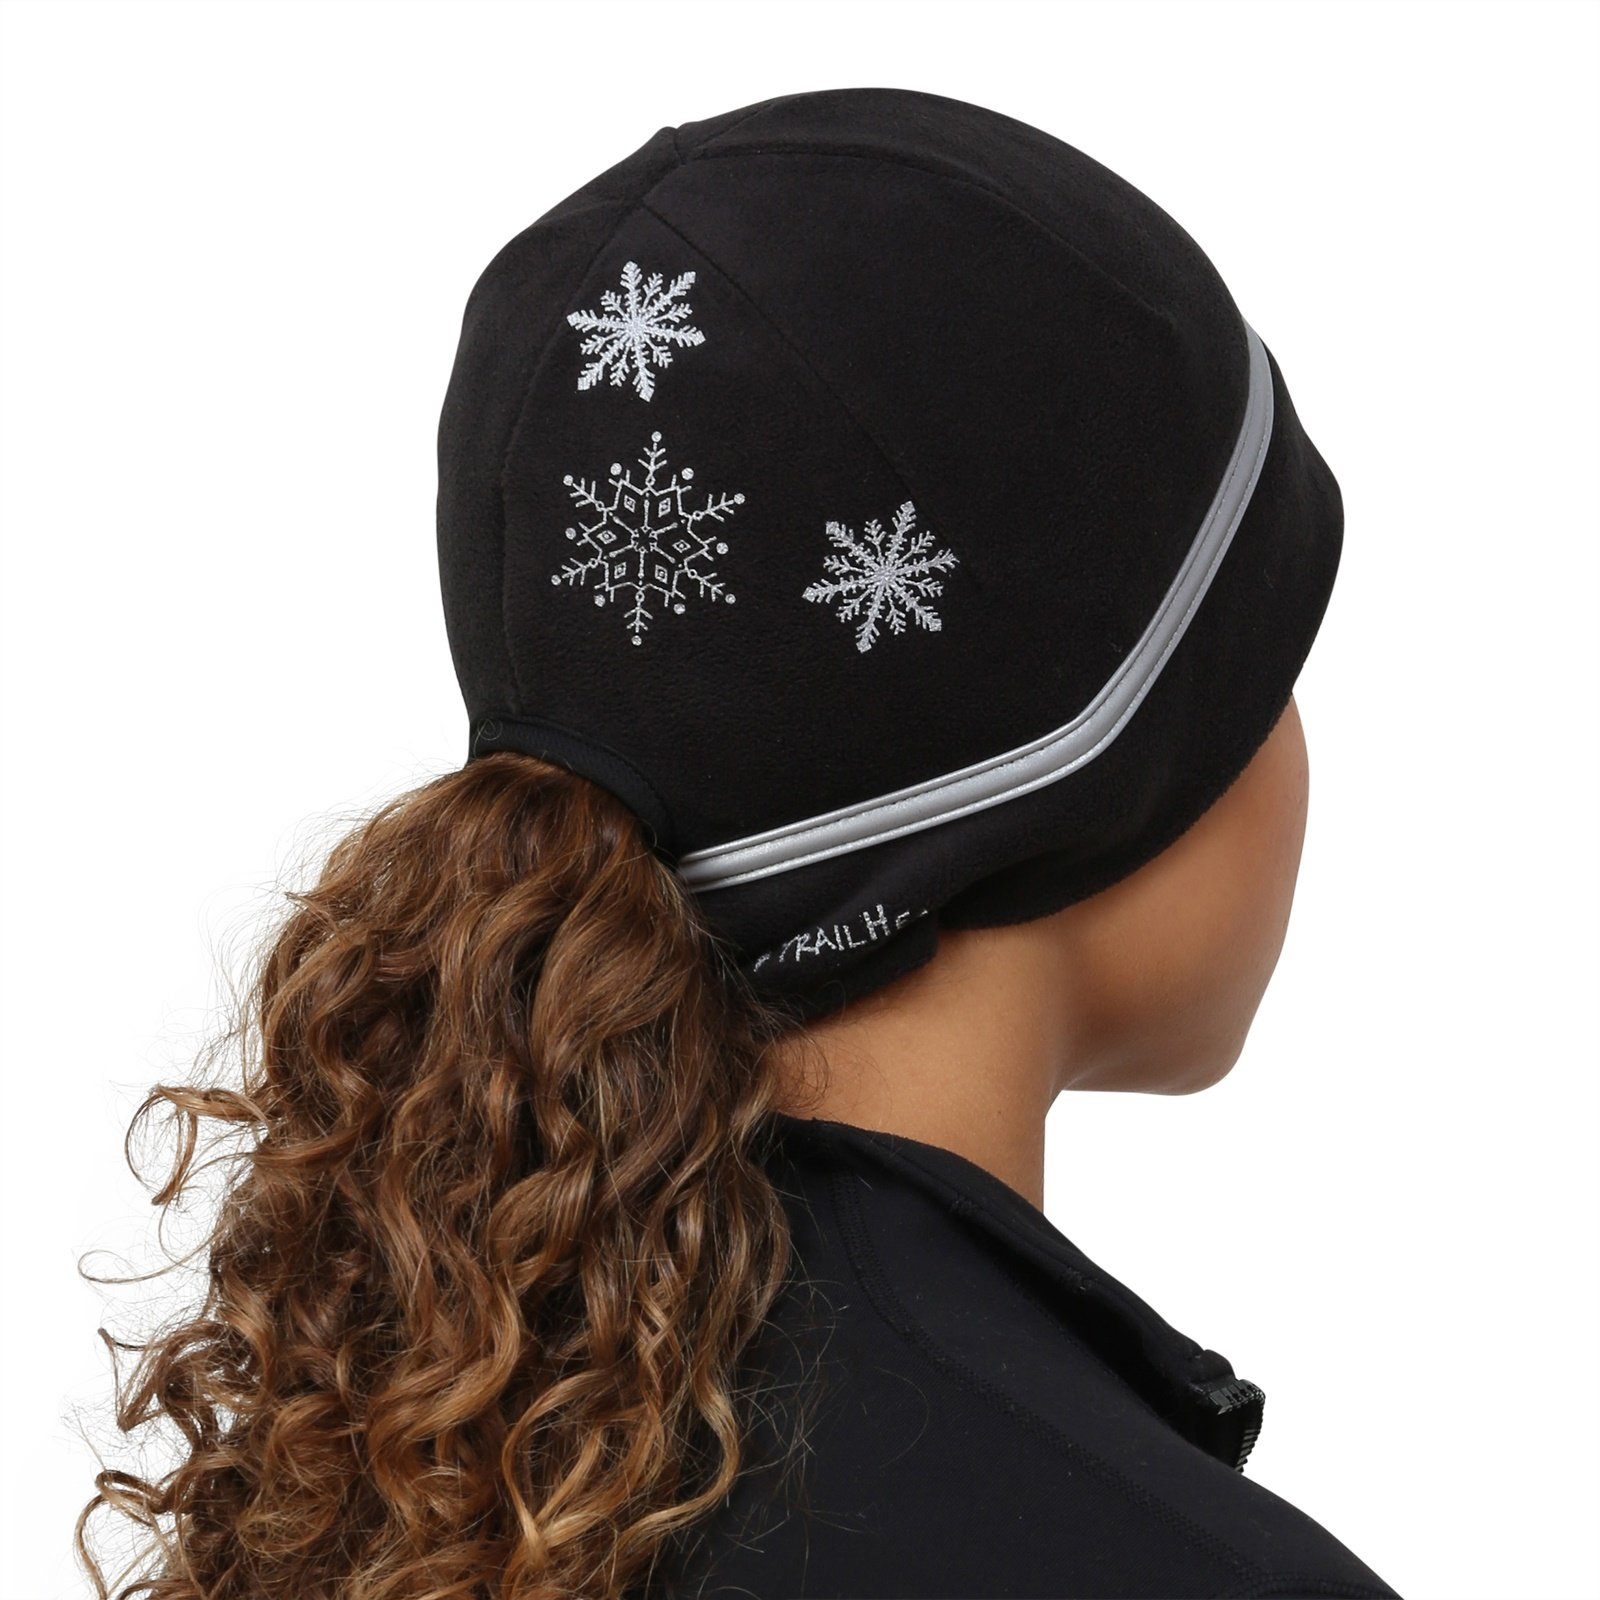 8e0b3f127ff TrailHeads Women s Ponytail Hat - Reflective Cold Weather Running Beanie -  black snowflake